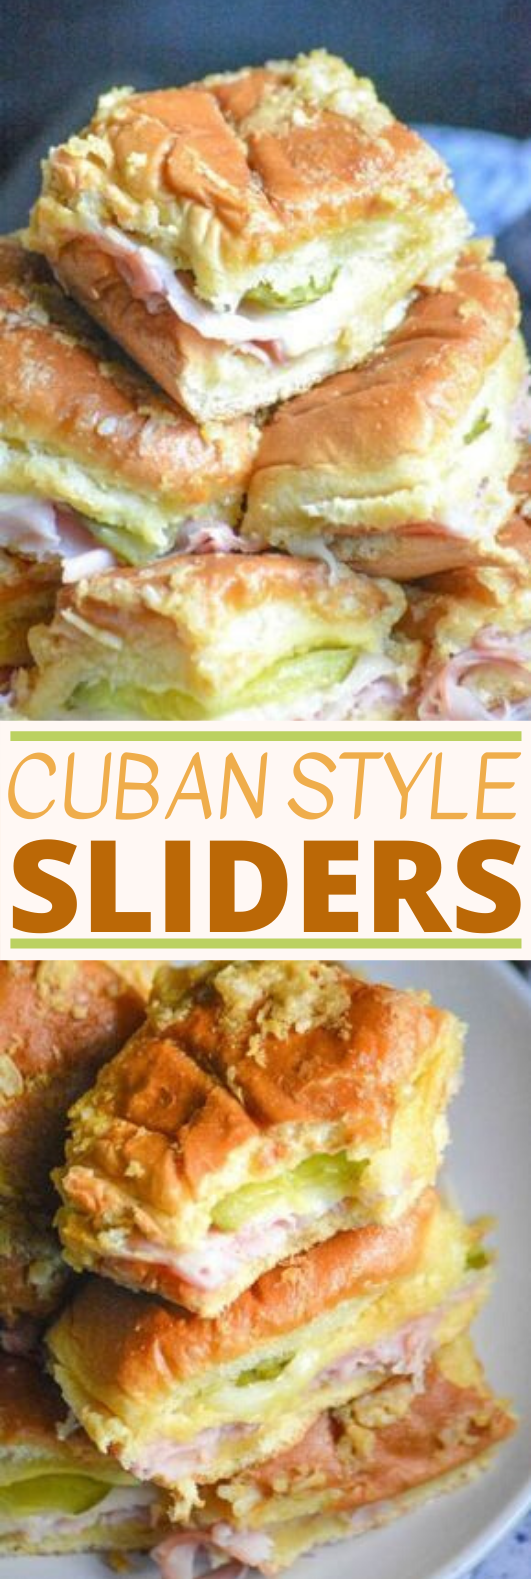 Cuban Style Sliders #lunch #appetizers #dinner #party #fingerfood